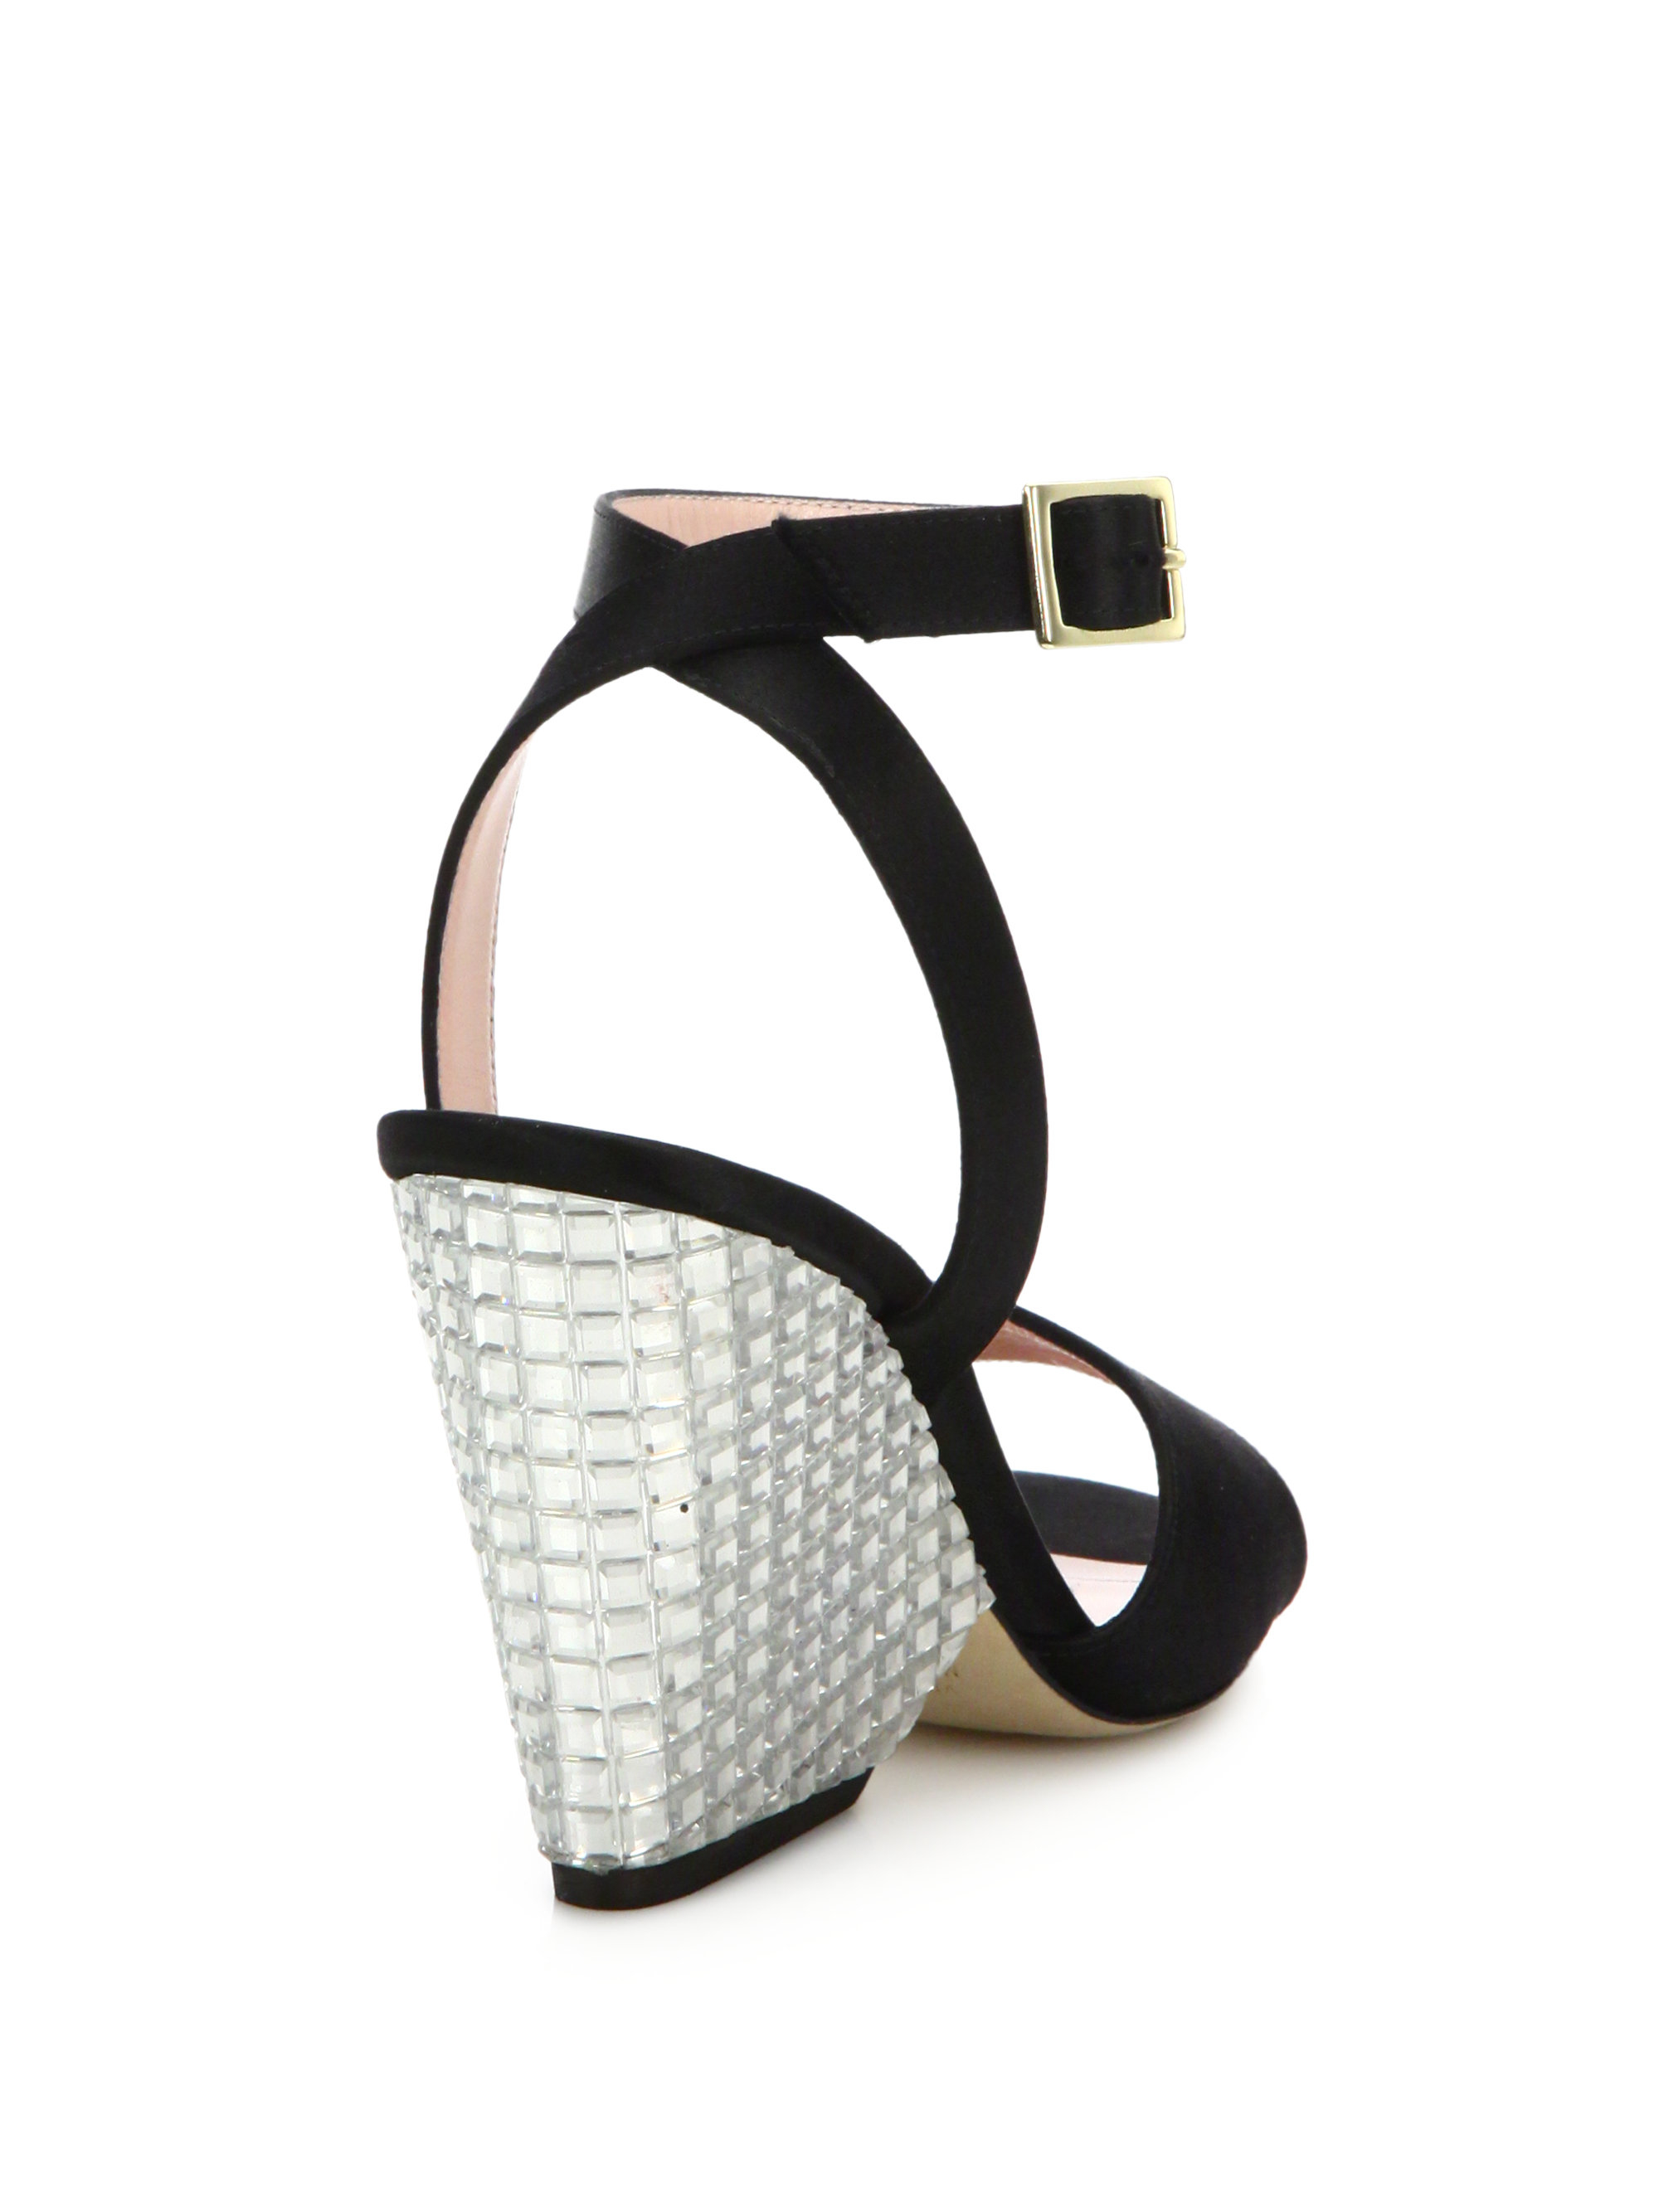 77e06755bc91 Lyst - Kate Spade Isadora Satin Jeweled Wedge Sandals in Black